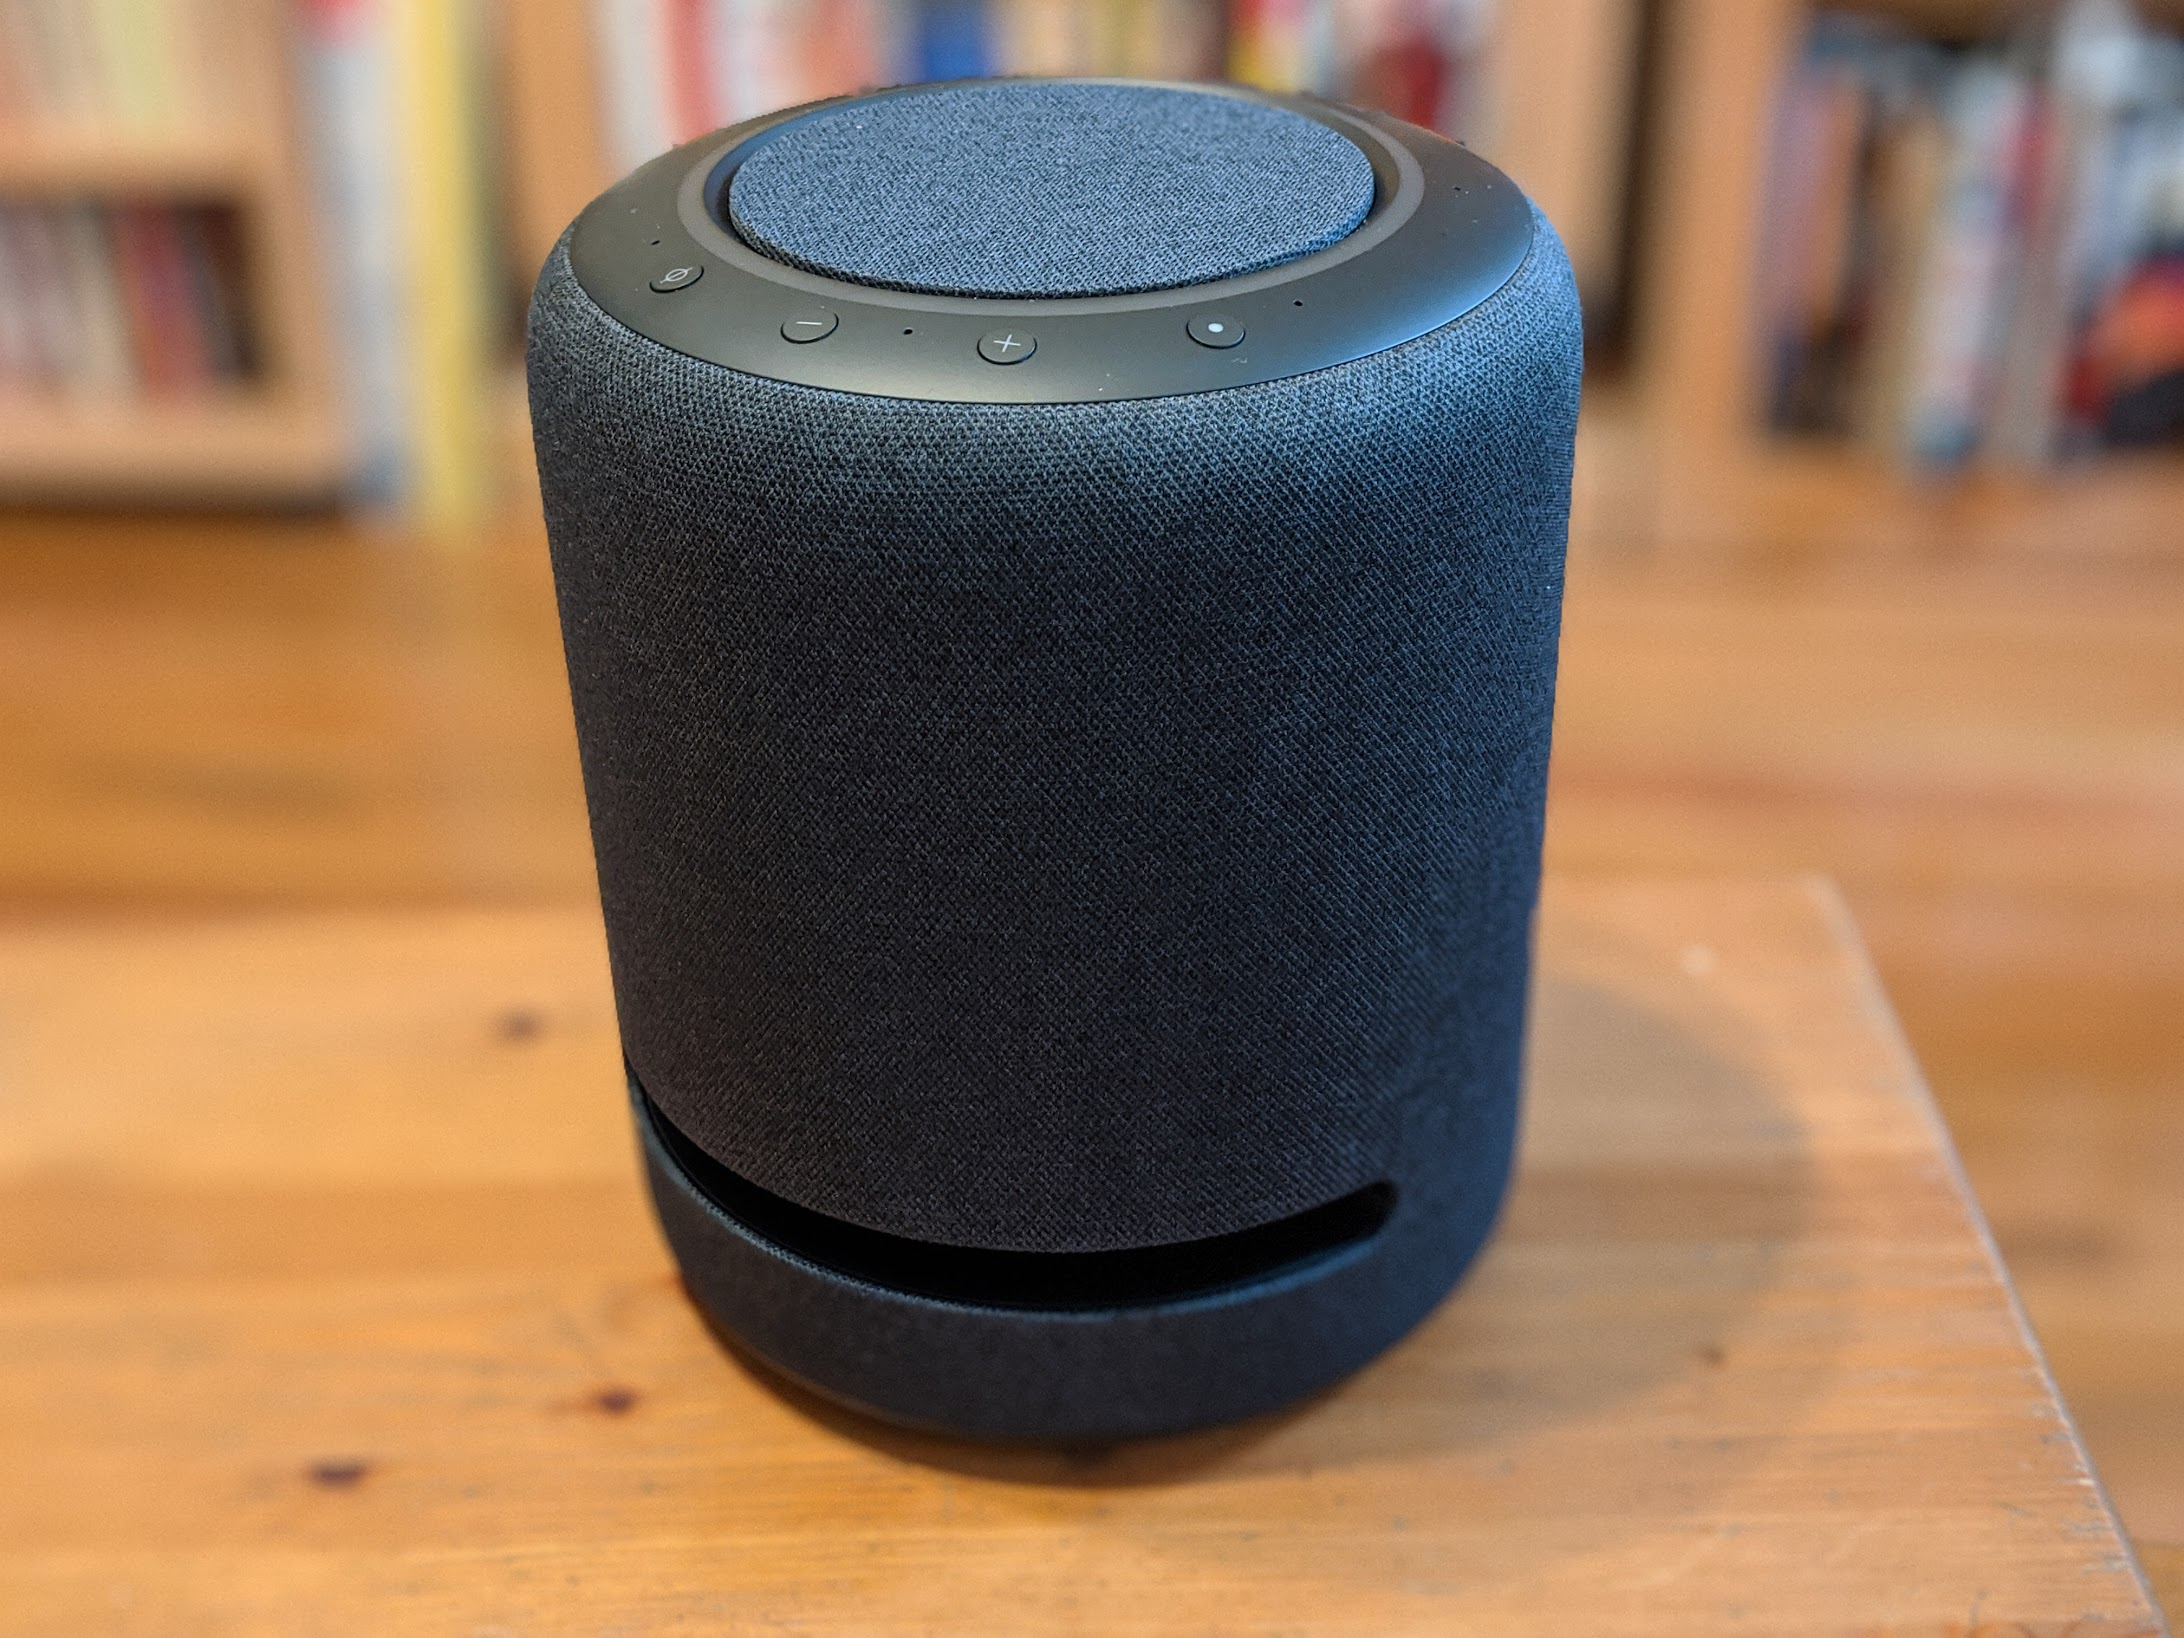 Amazon's Echo Buds may soon be able to track workouts